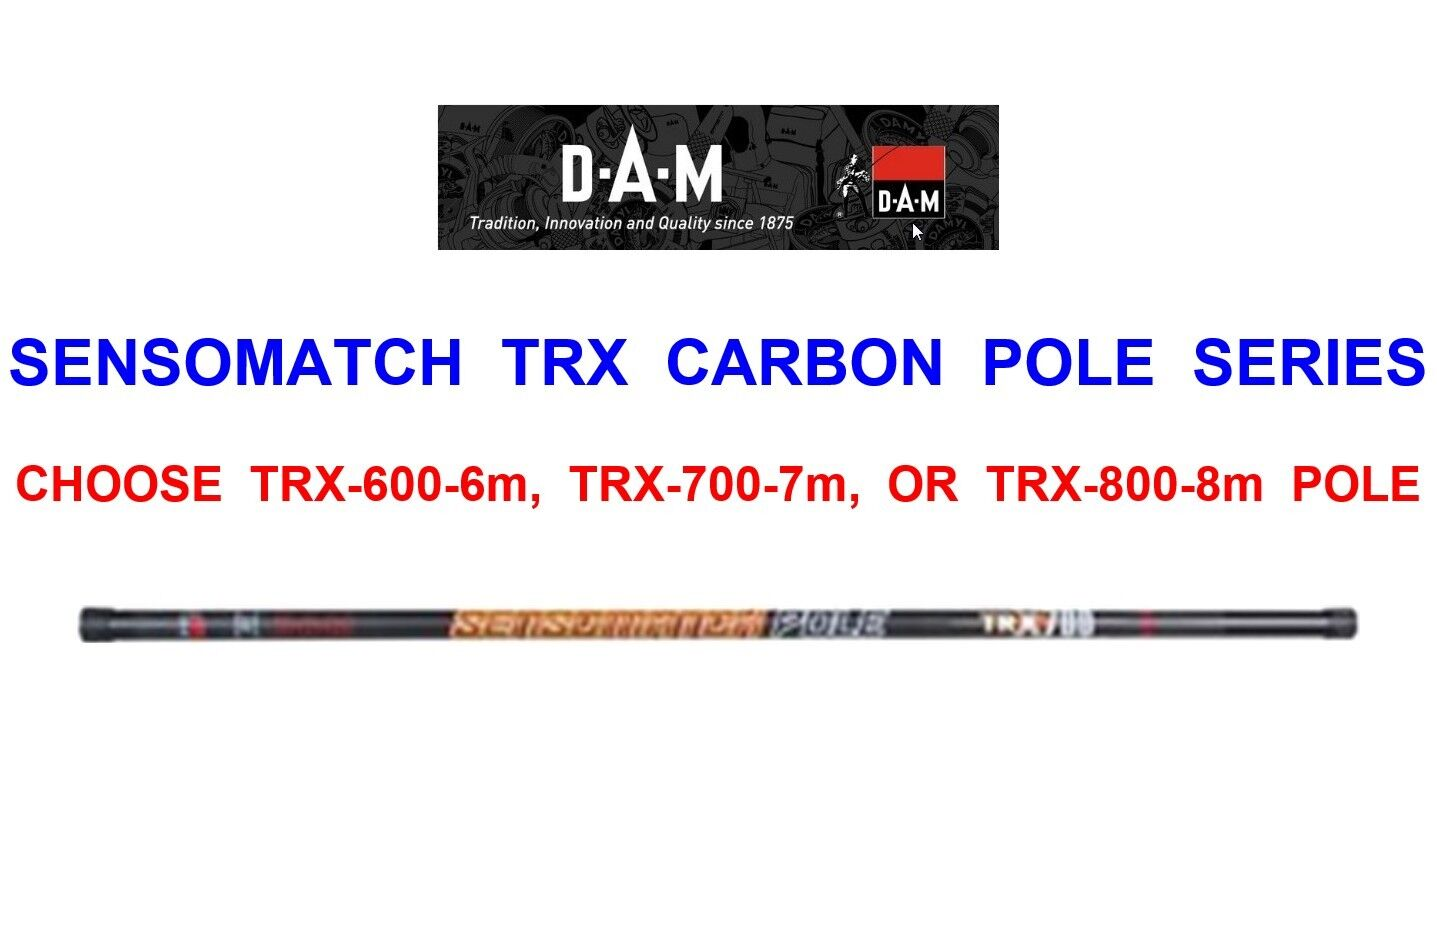 DAM SENSOMATCH TRX CARBON POLE SERIES COARSE CARP FISHING RODS IN 6m 7m 8m